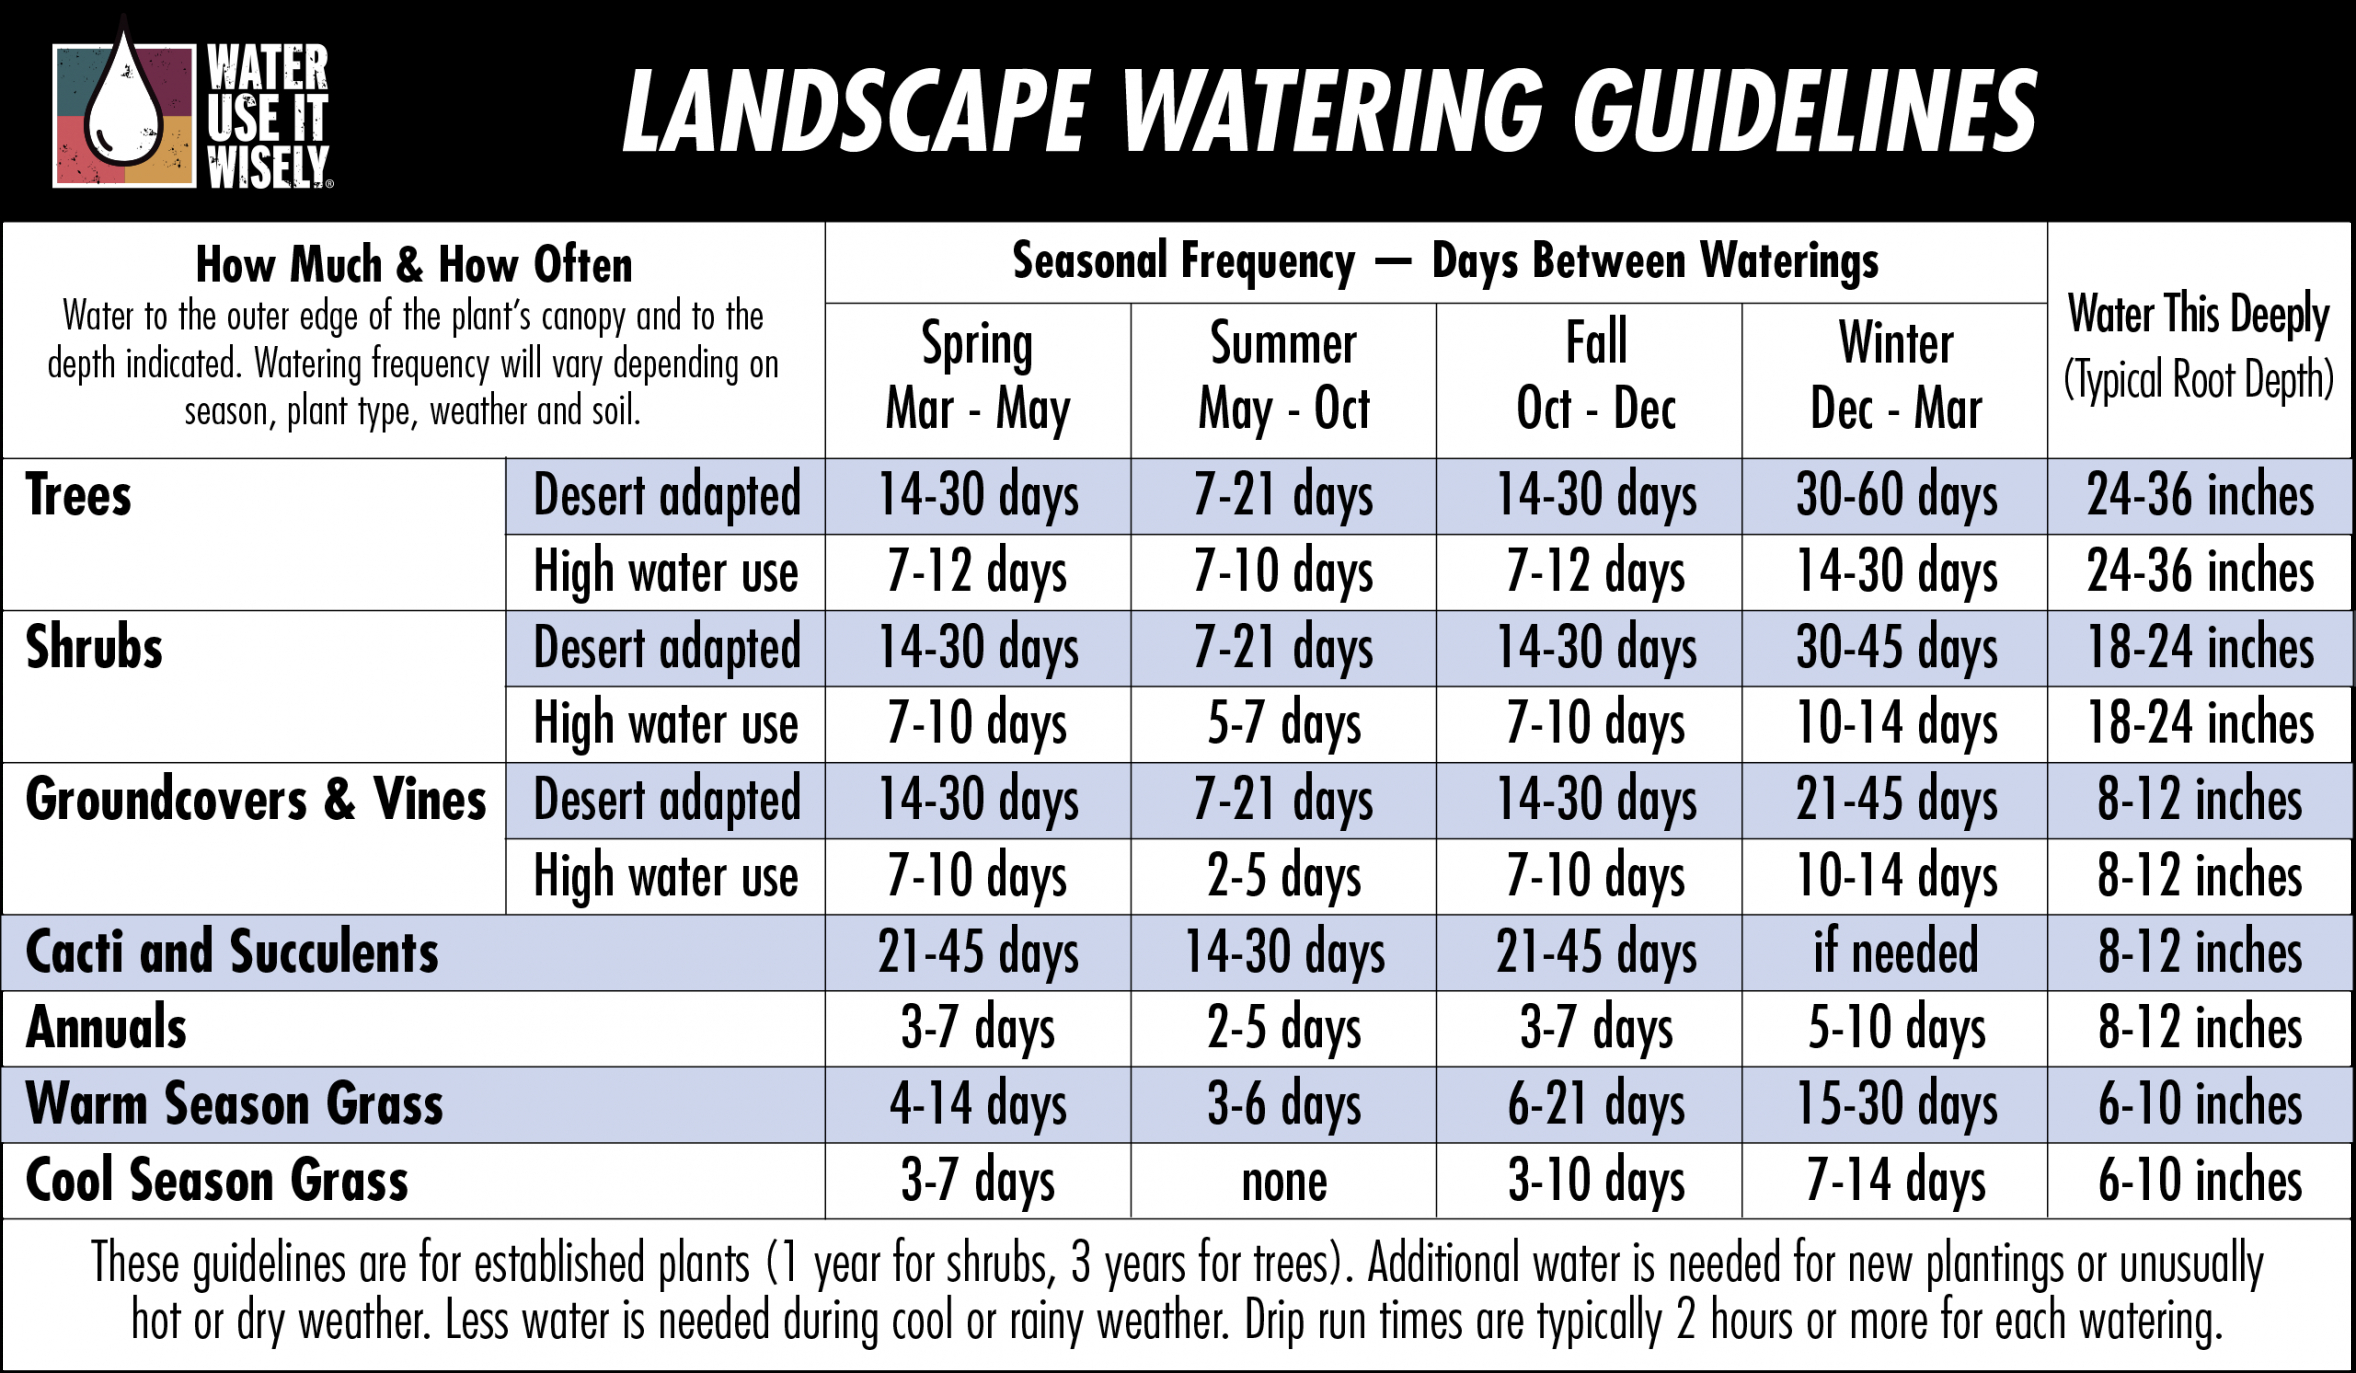 sample plant watering guide  water use it wisely garden watering schedule template